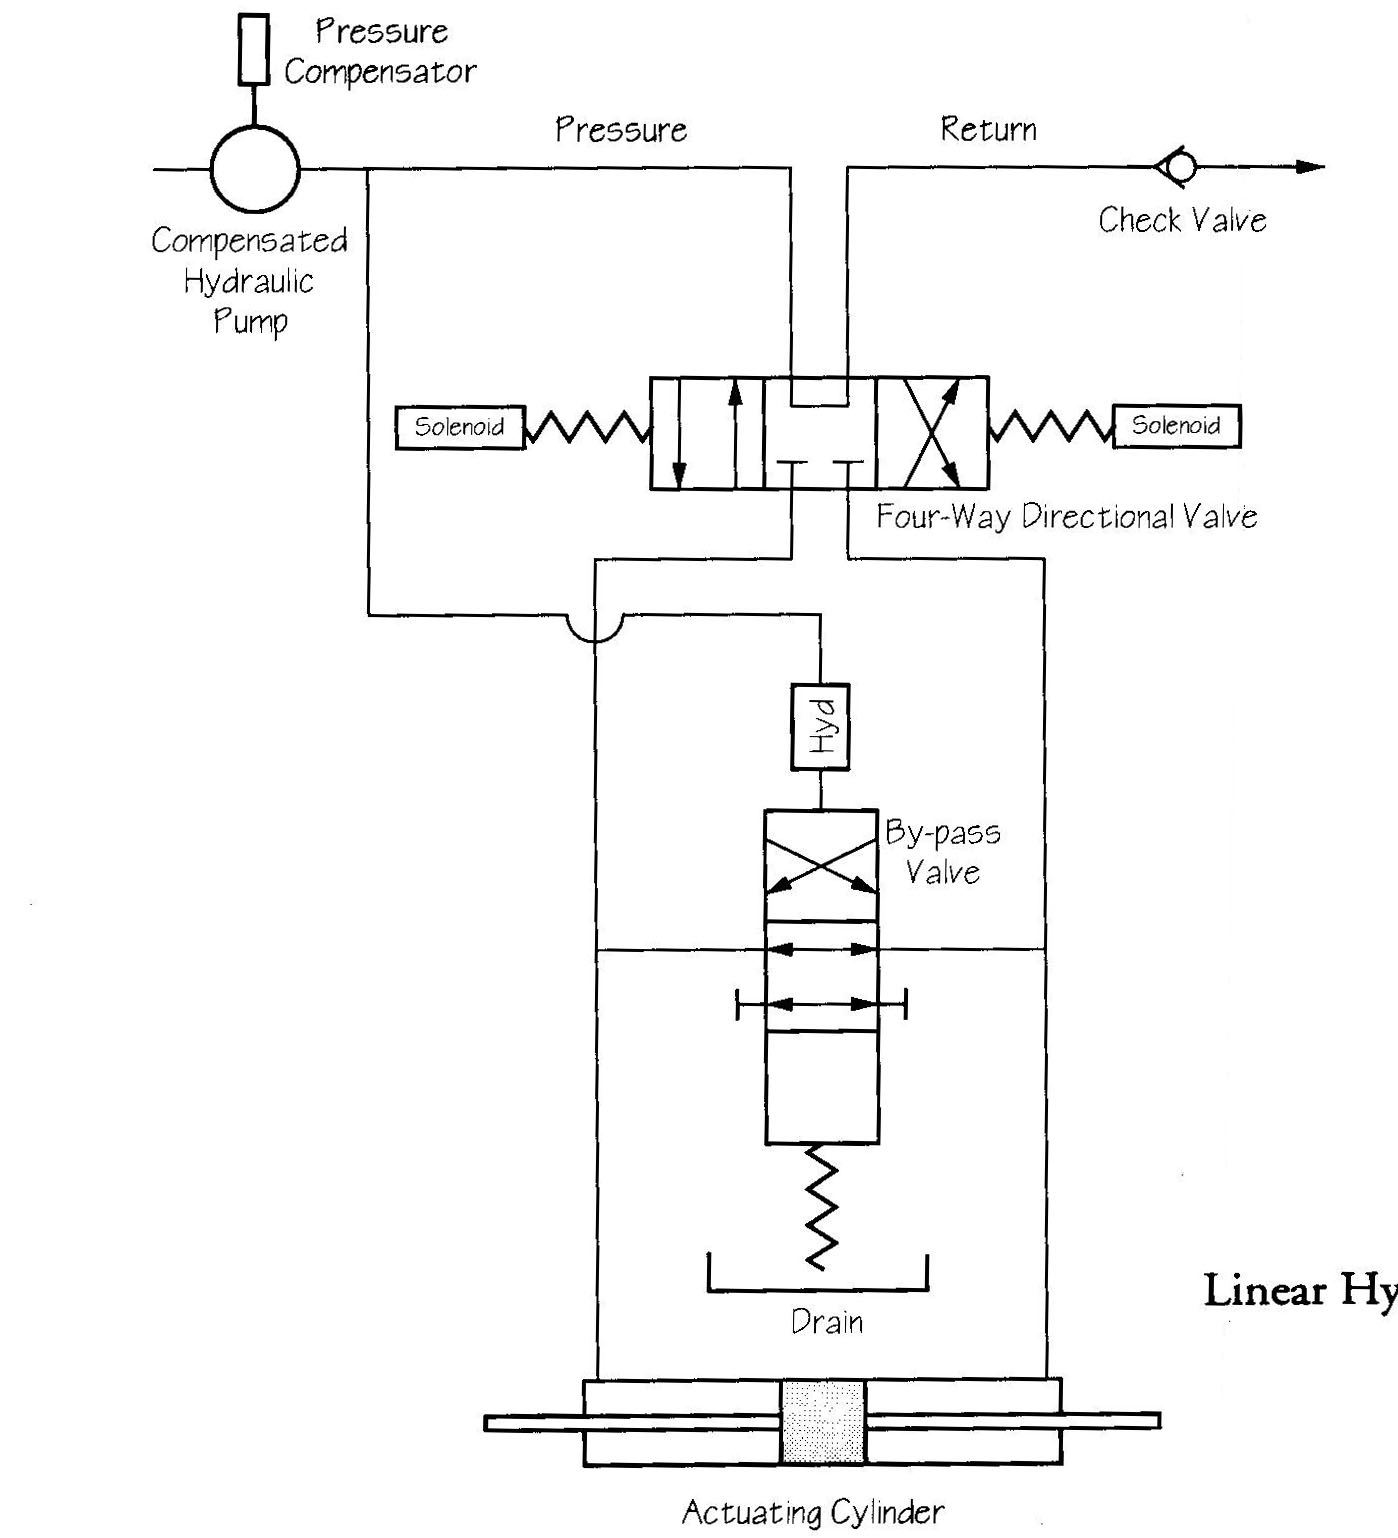 Linear Hydraulic Power Unit